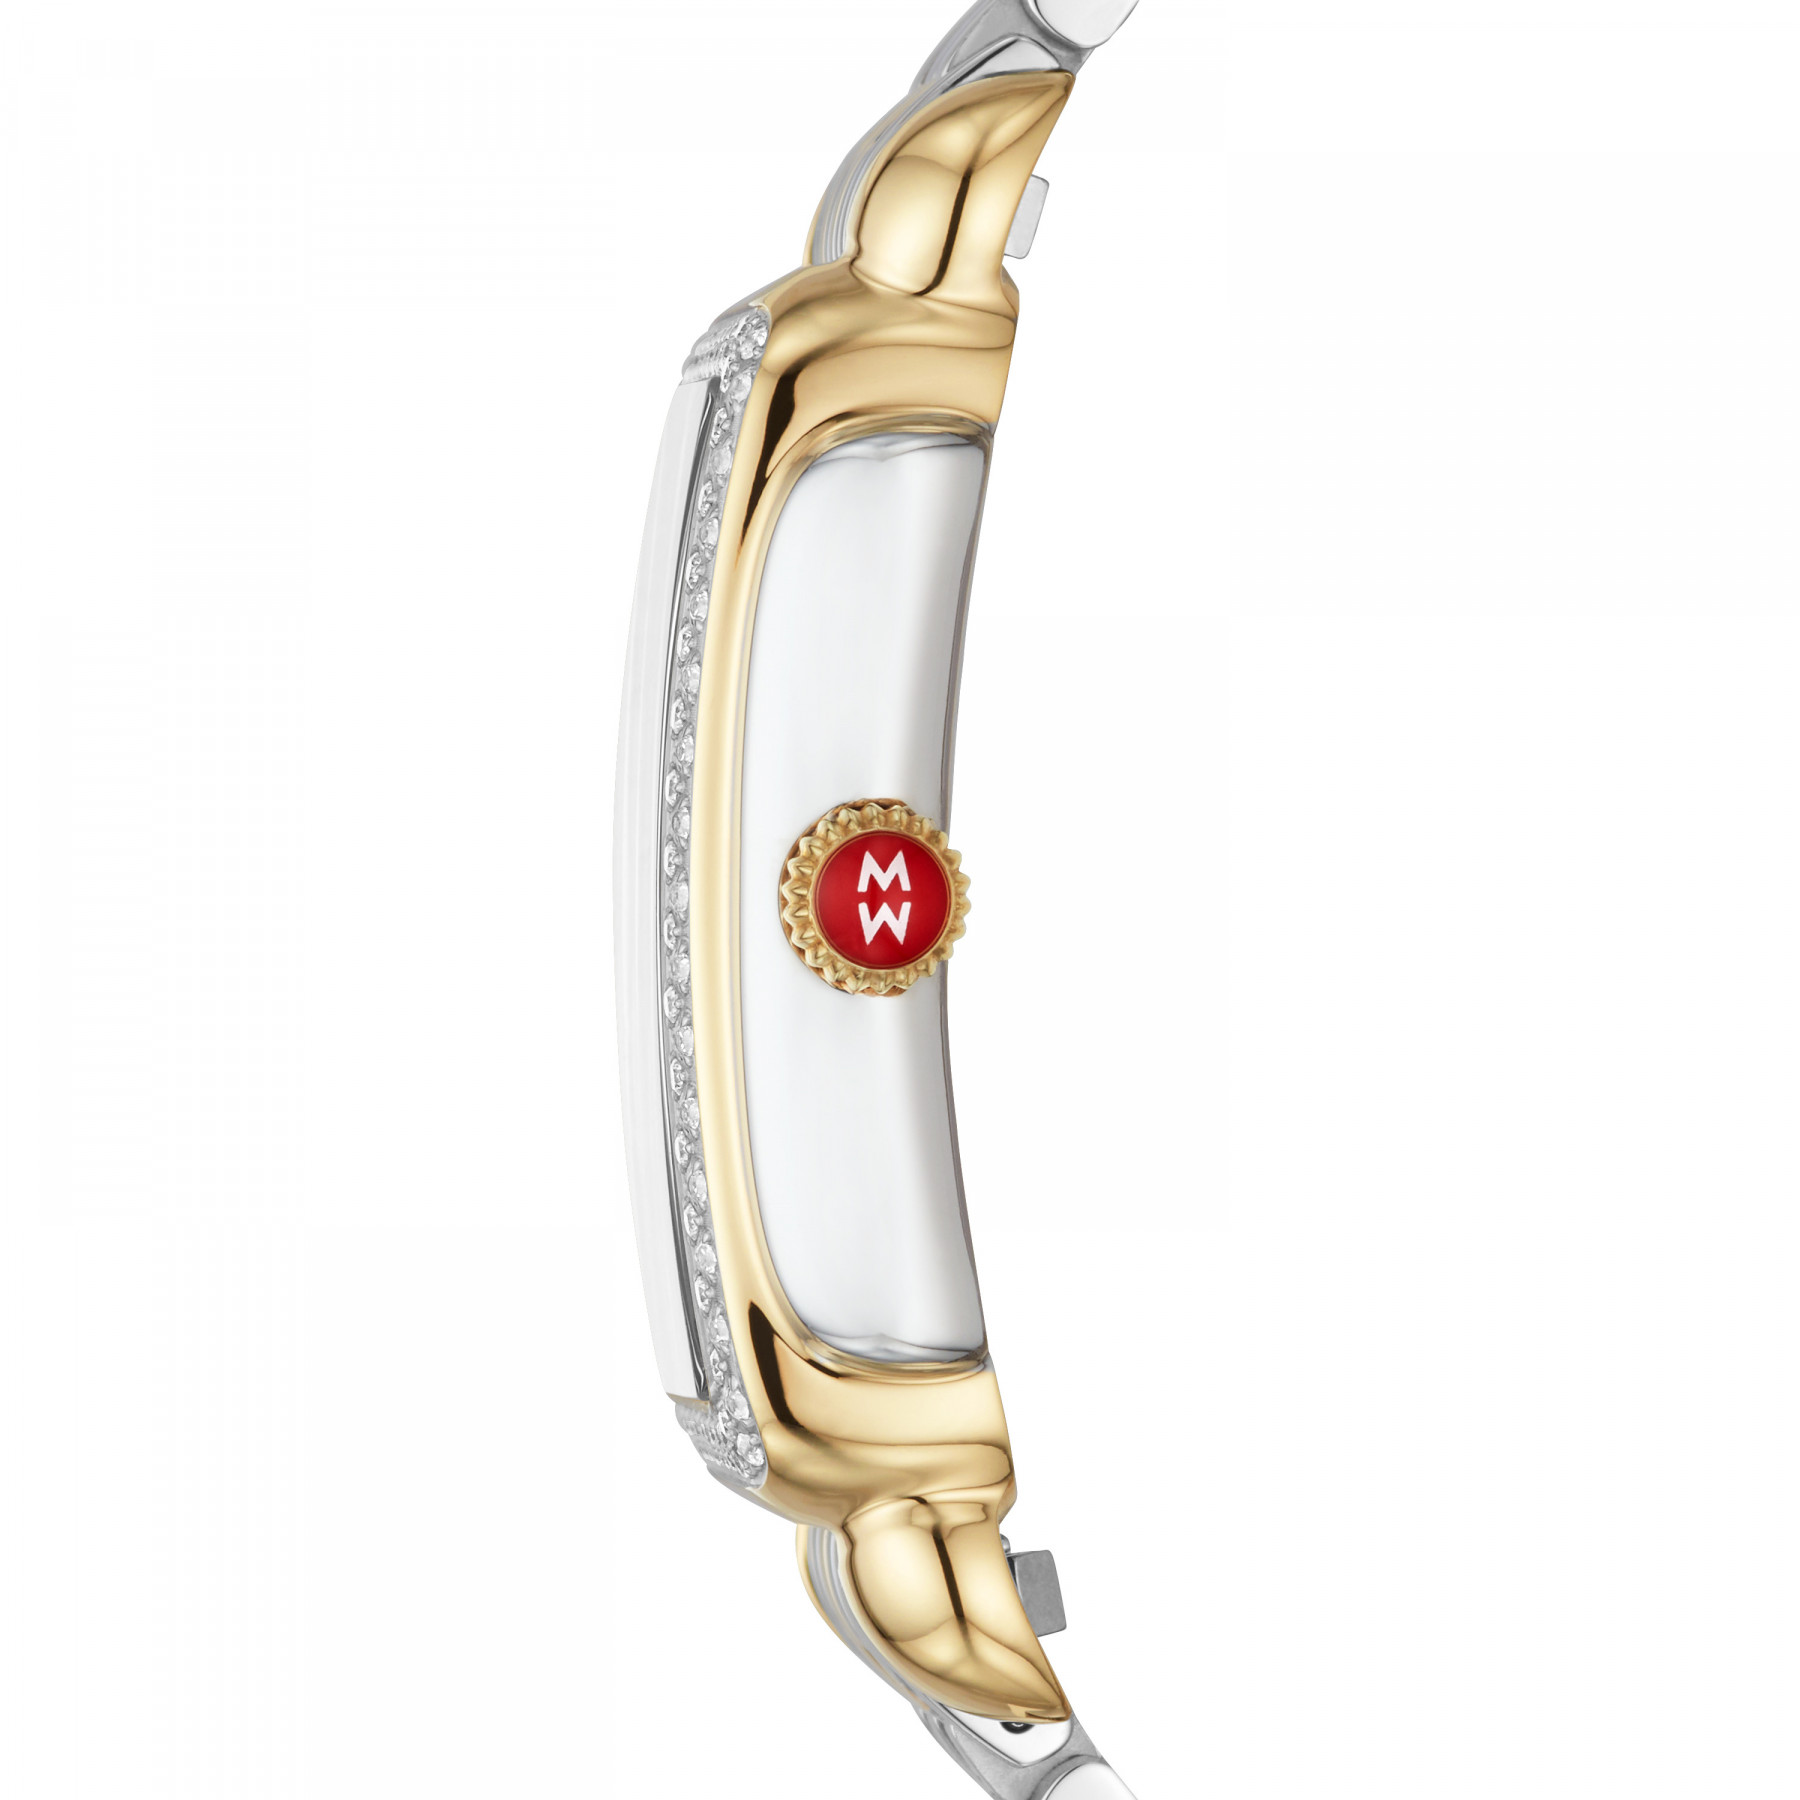 Michele Deco Park Gold and Steel Diamond Watch – 26.5mm side view